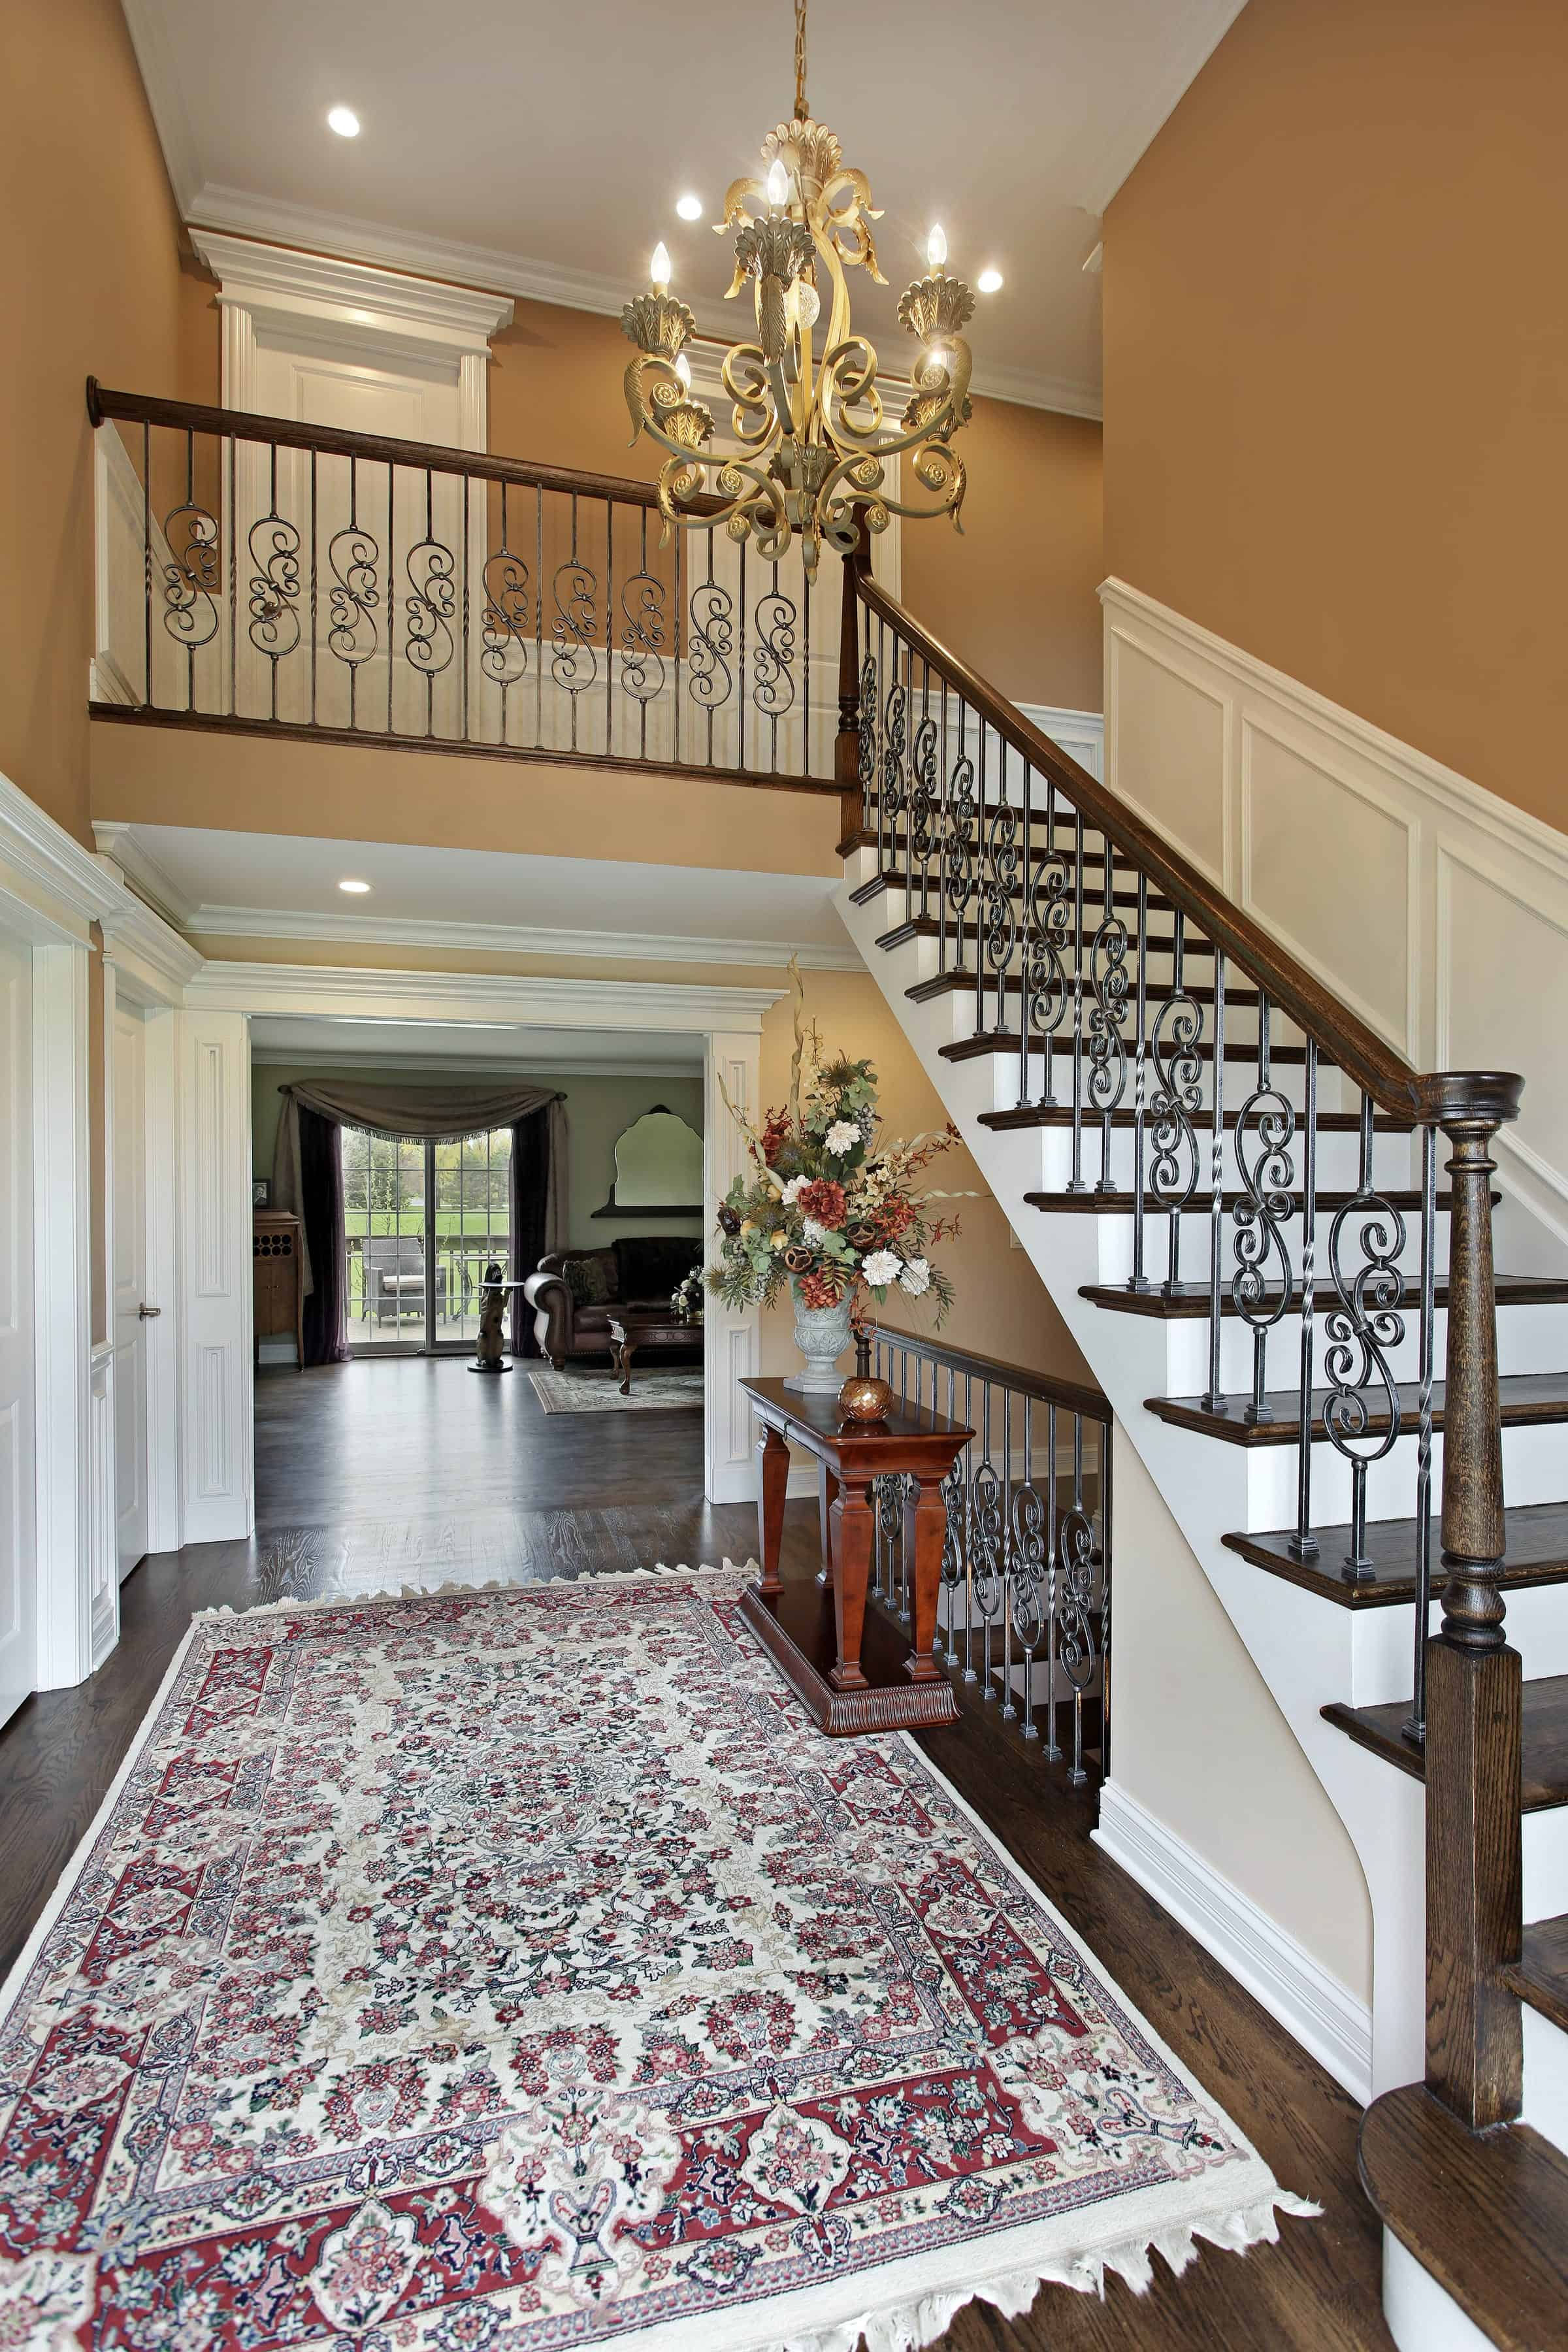 This foyer features a hardwood flooring topped by a stylish rug. The staircase looks beautiful lighted by an elegant chandelier.